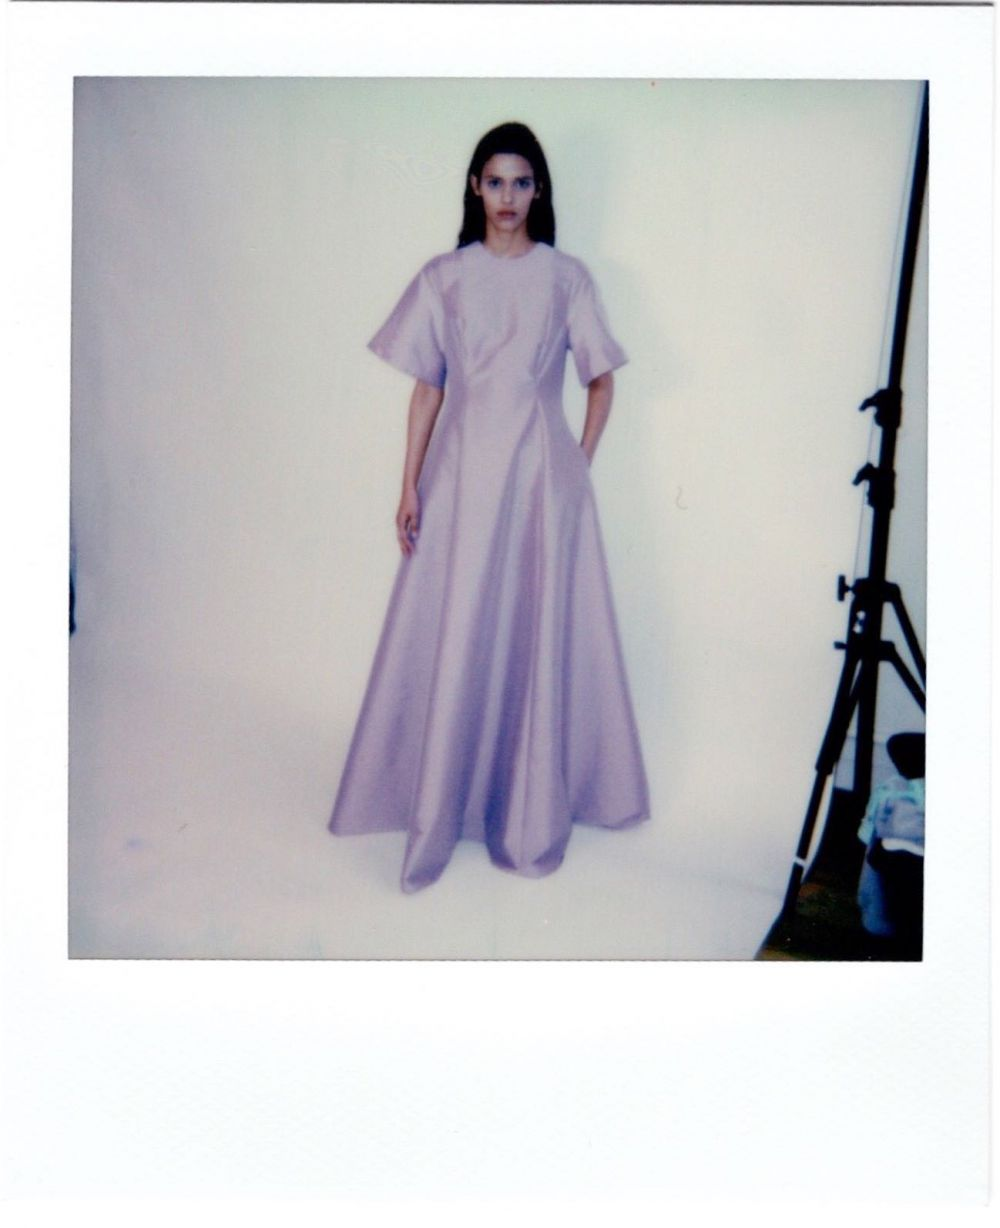 🖤 PRESPRING21 COLLECTION LAUNCHING AT SELECTED STORES WORLDWIDE. 🖤 Polaroids taken from our Paris Pre-quarantaine showroom last March. Seems like forever ago. 💭 THE WINTER PINK MADELINE DRESS. #PS21